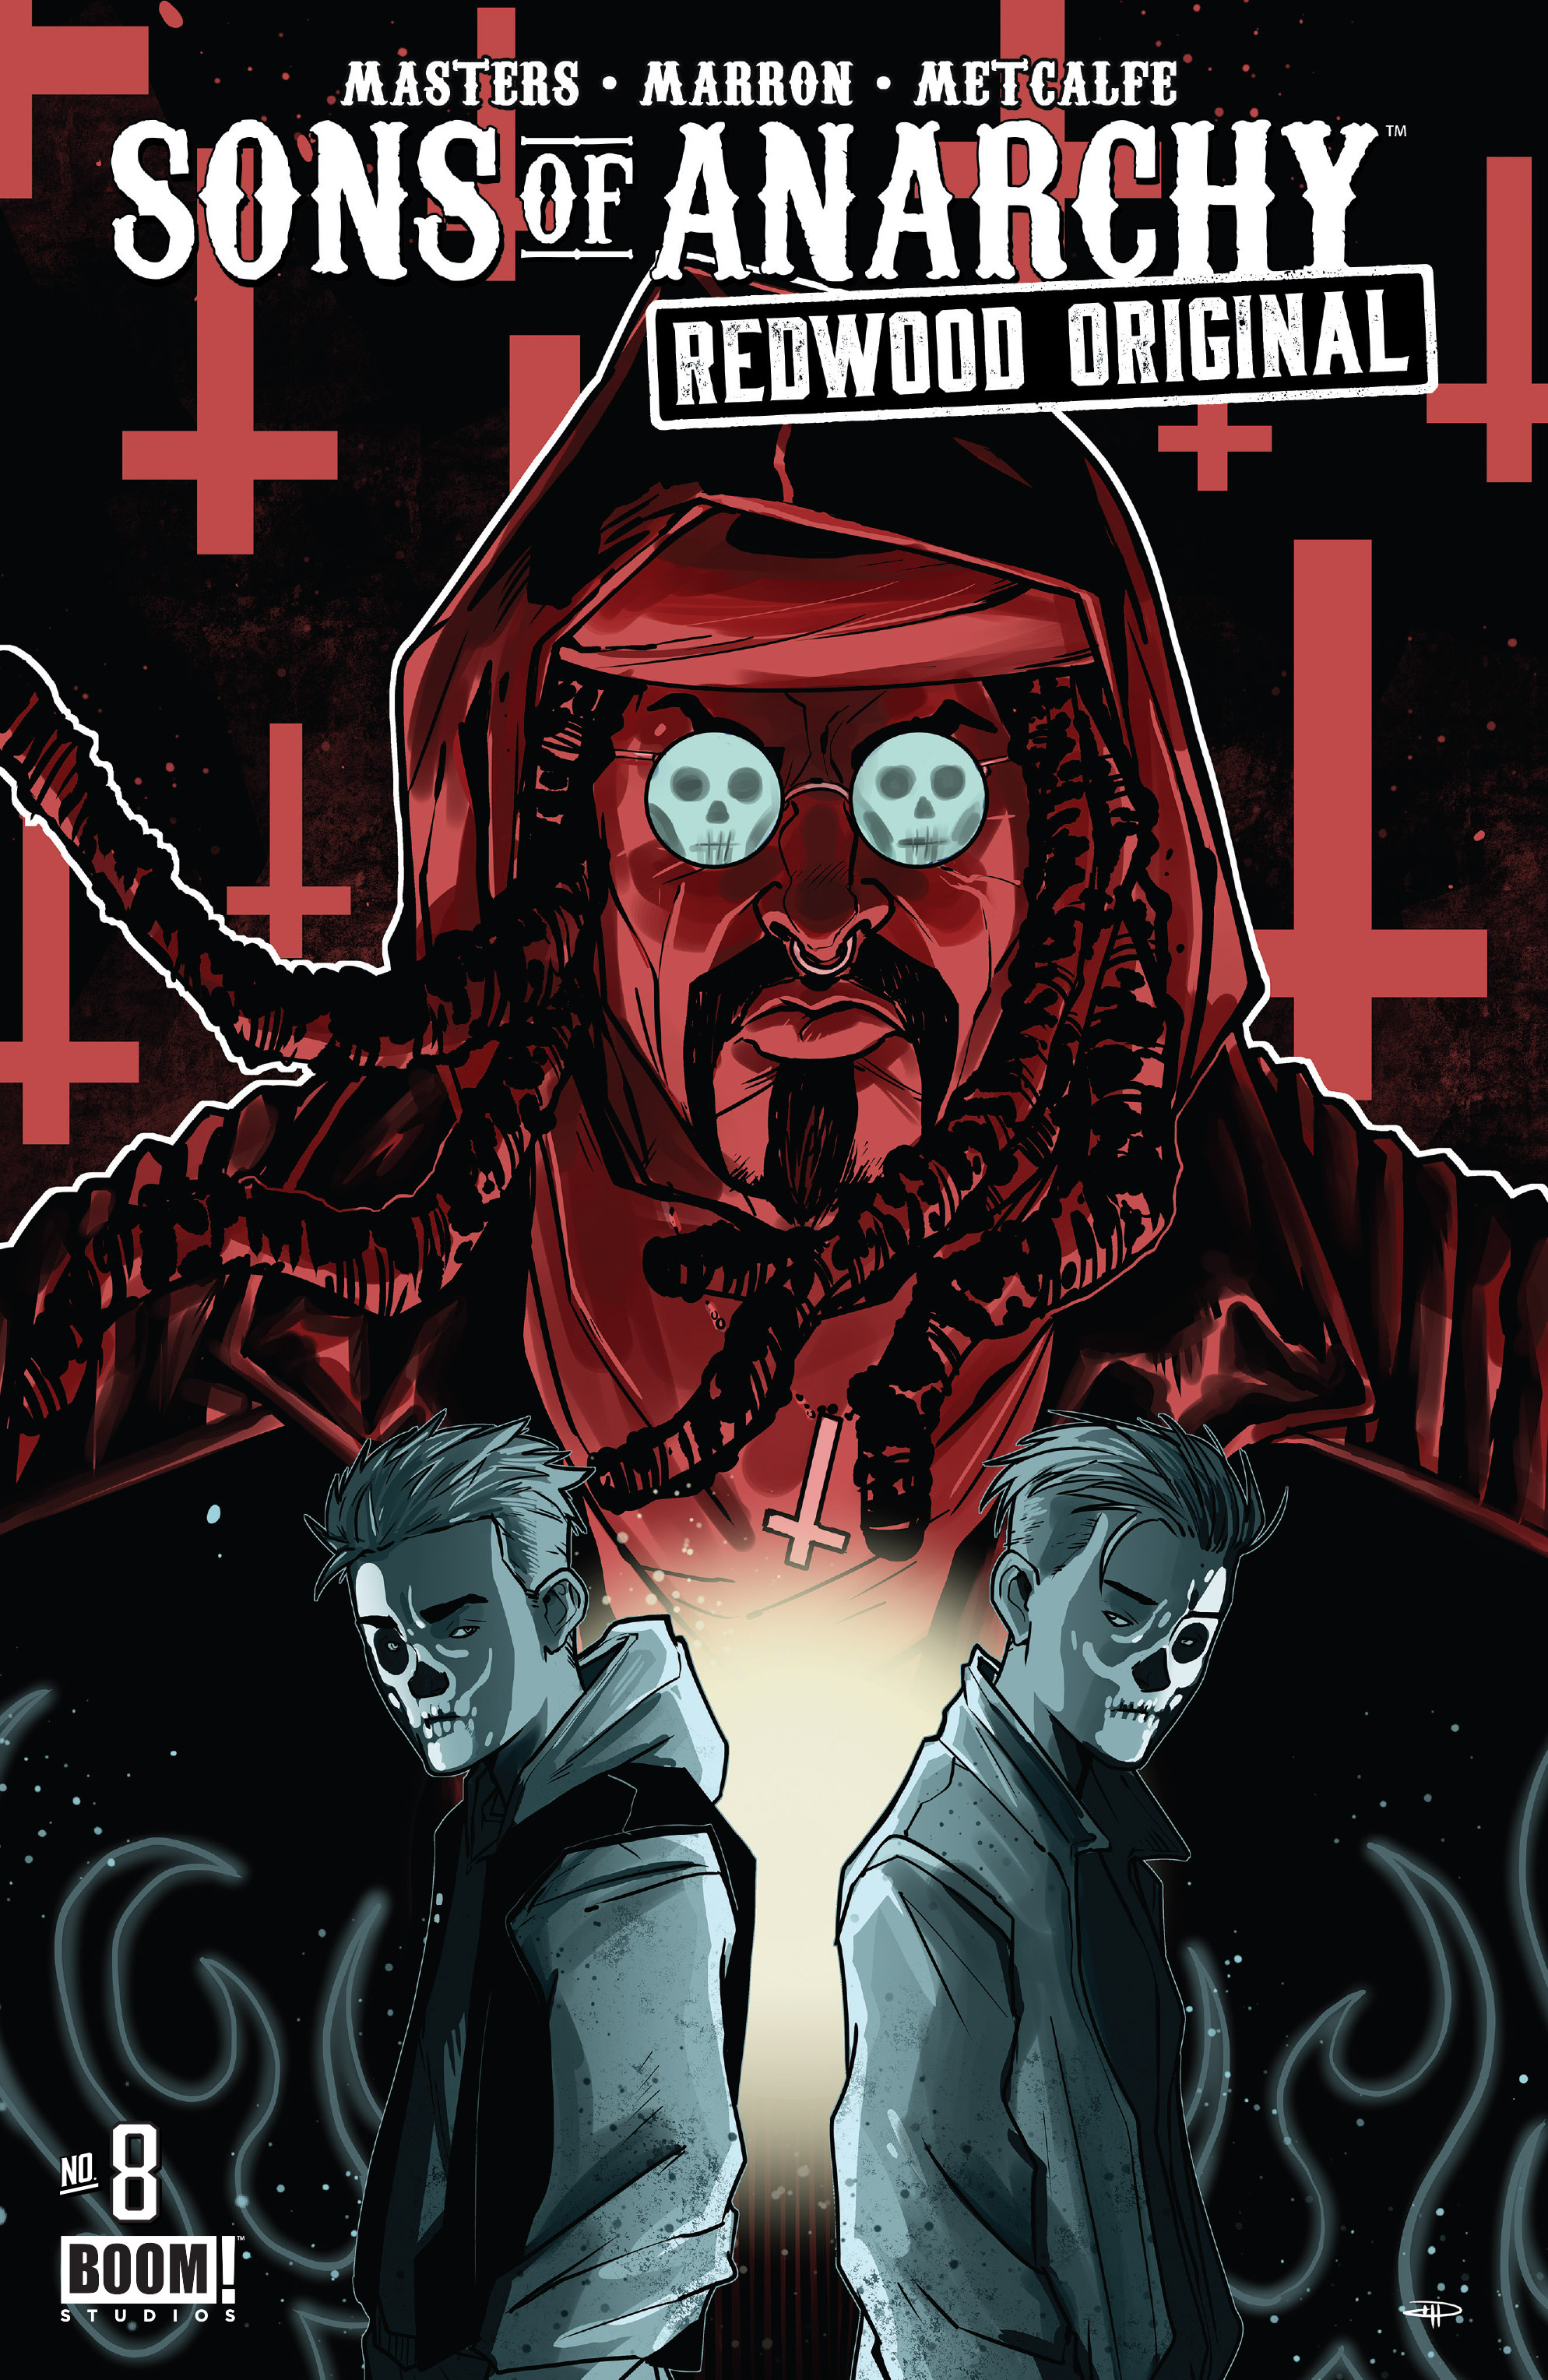 Read online Sons of Anarchy: Redwood Original comic -  Issue #8 - 1